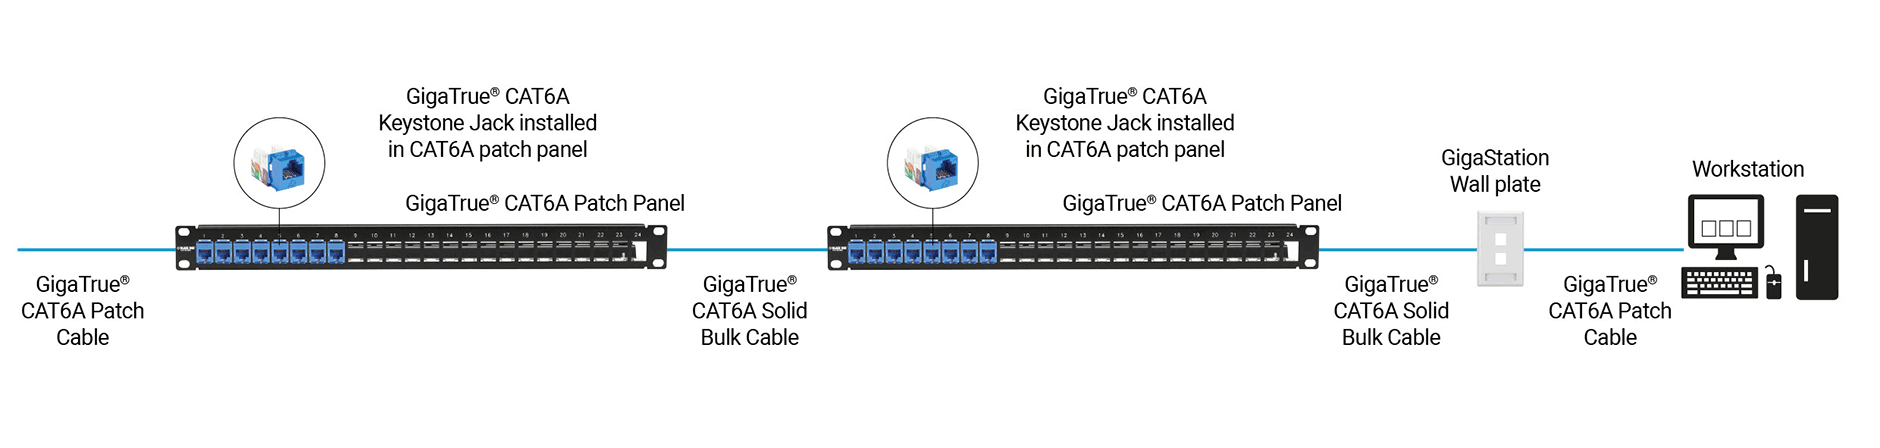 CAT6A Structured Cabling